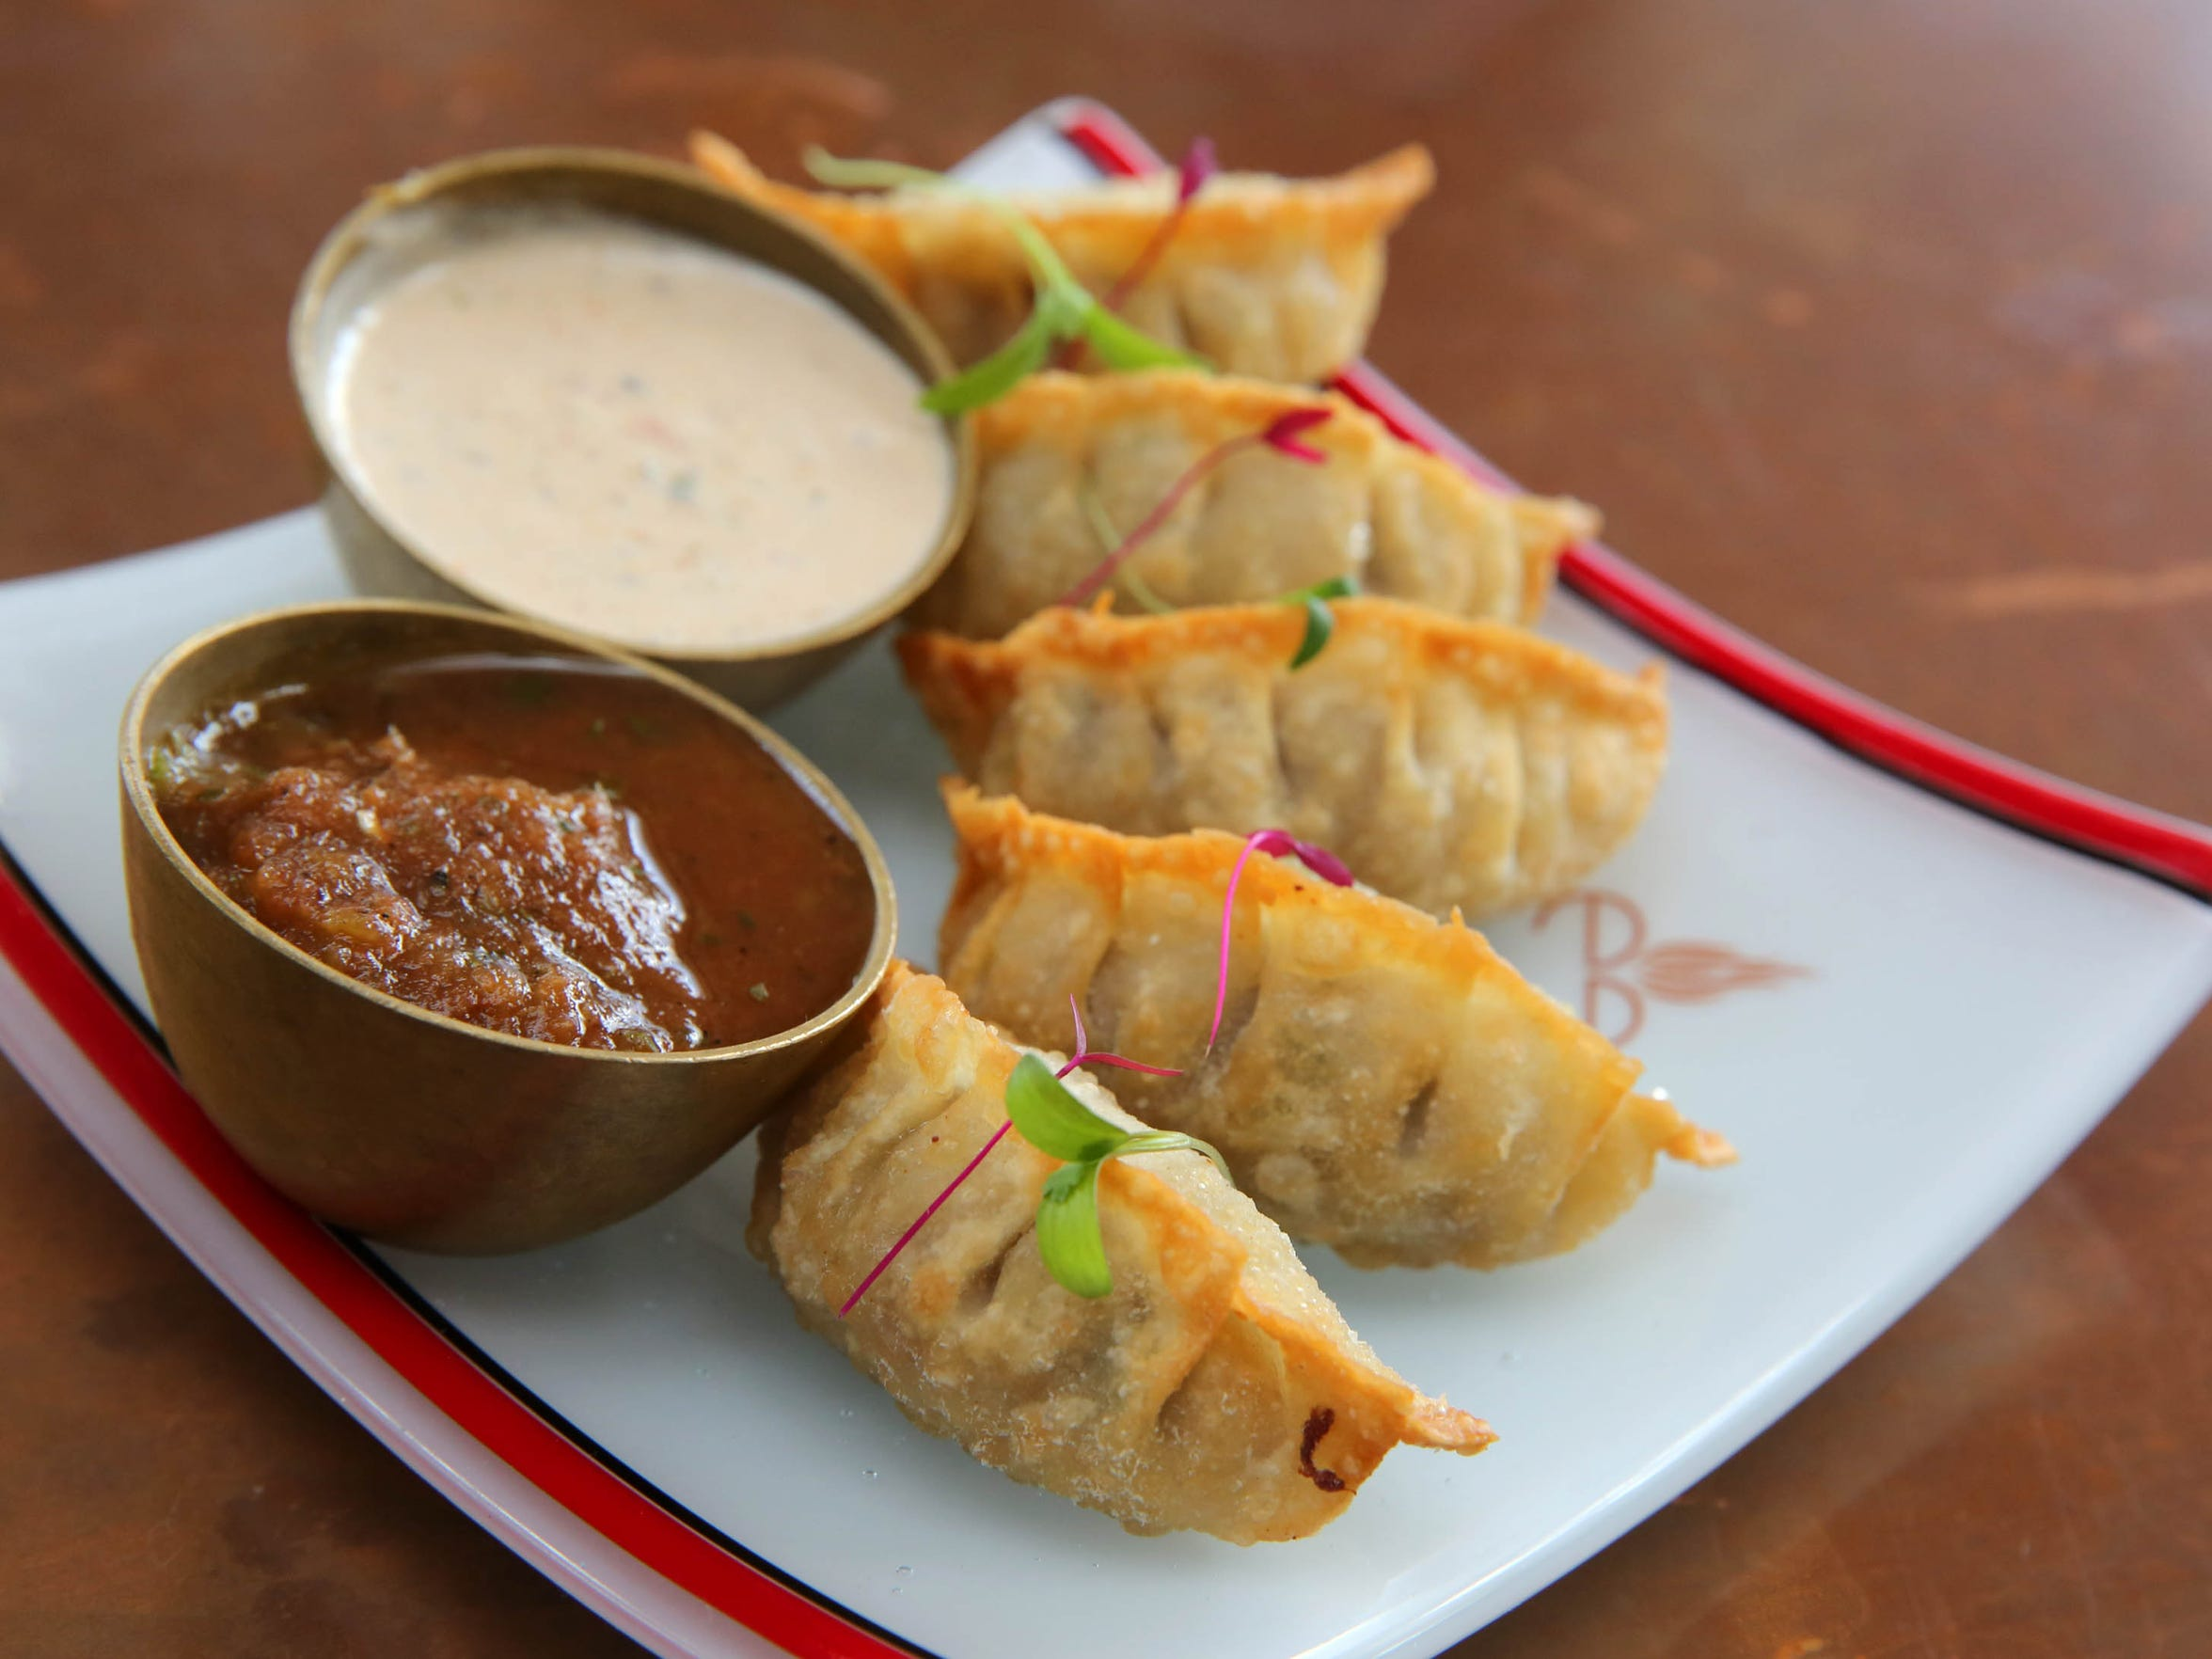 Momo are among the menu items at the Cheel, a Nepali